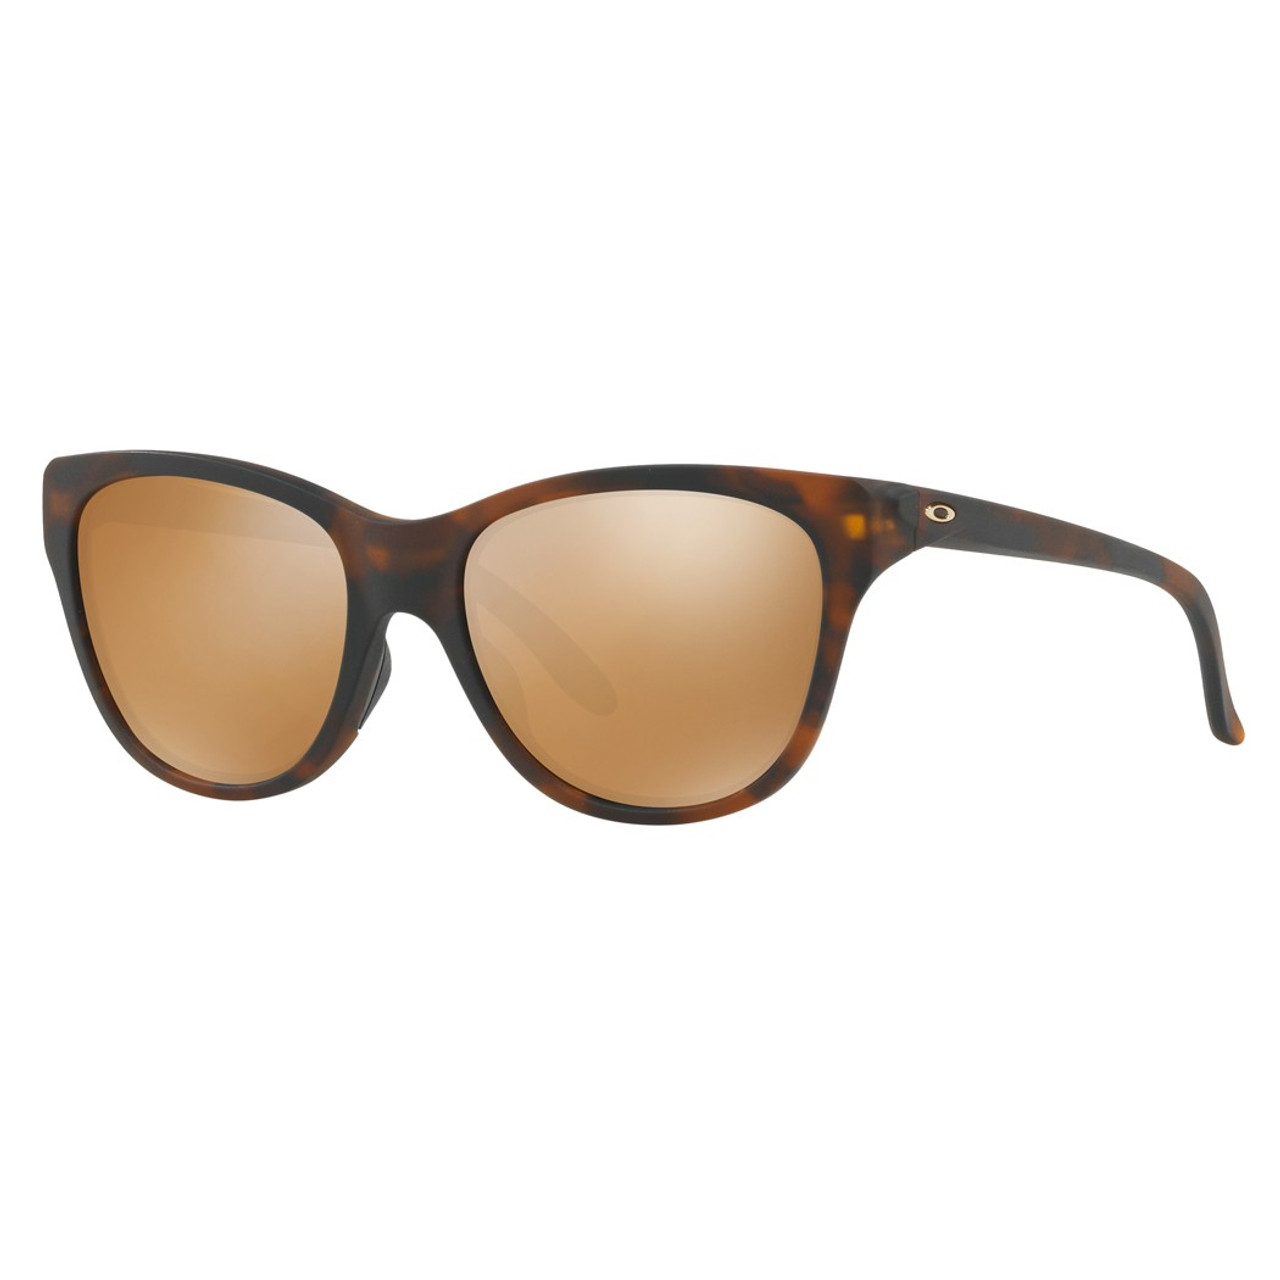 2869e8cfa7 Oakley Women s Sunglasses - Hold Out - Matte Tortoise Tungsten Iridium -  Surf and Dirt